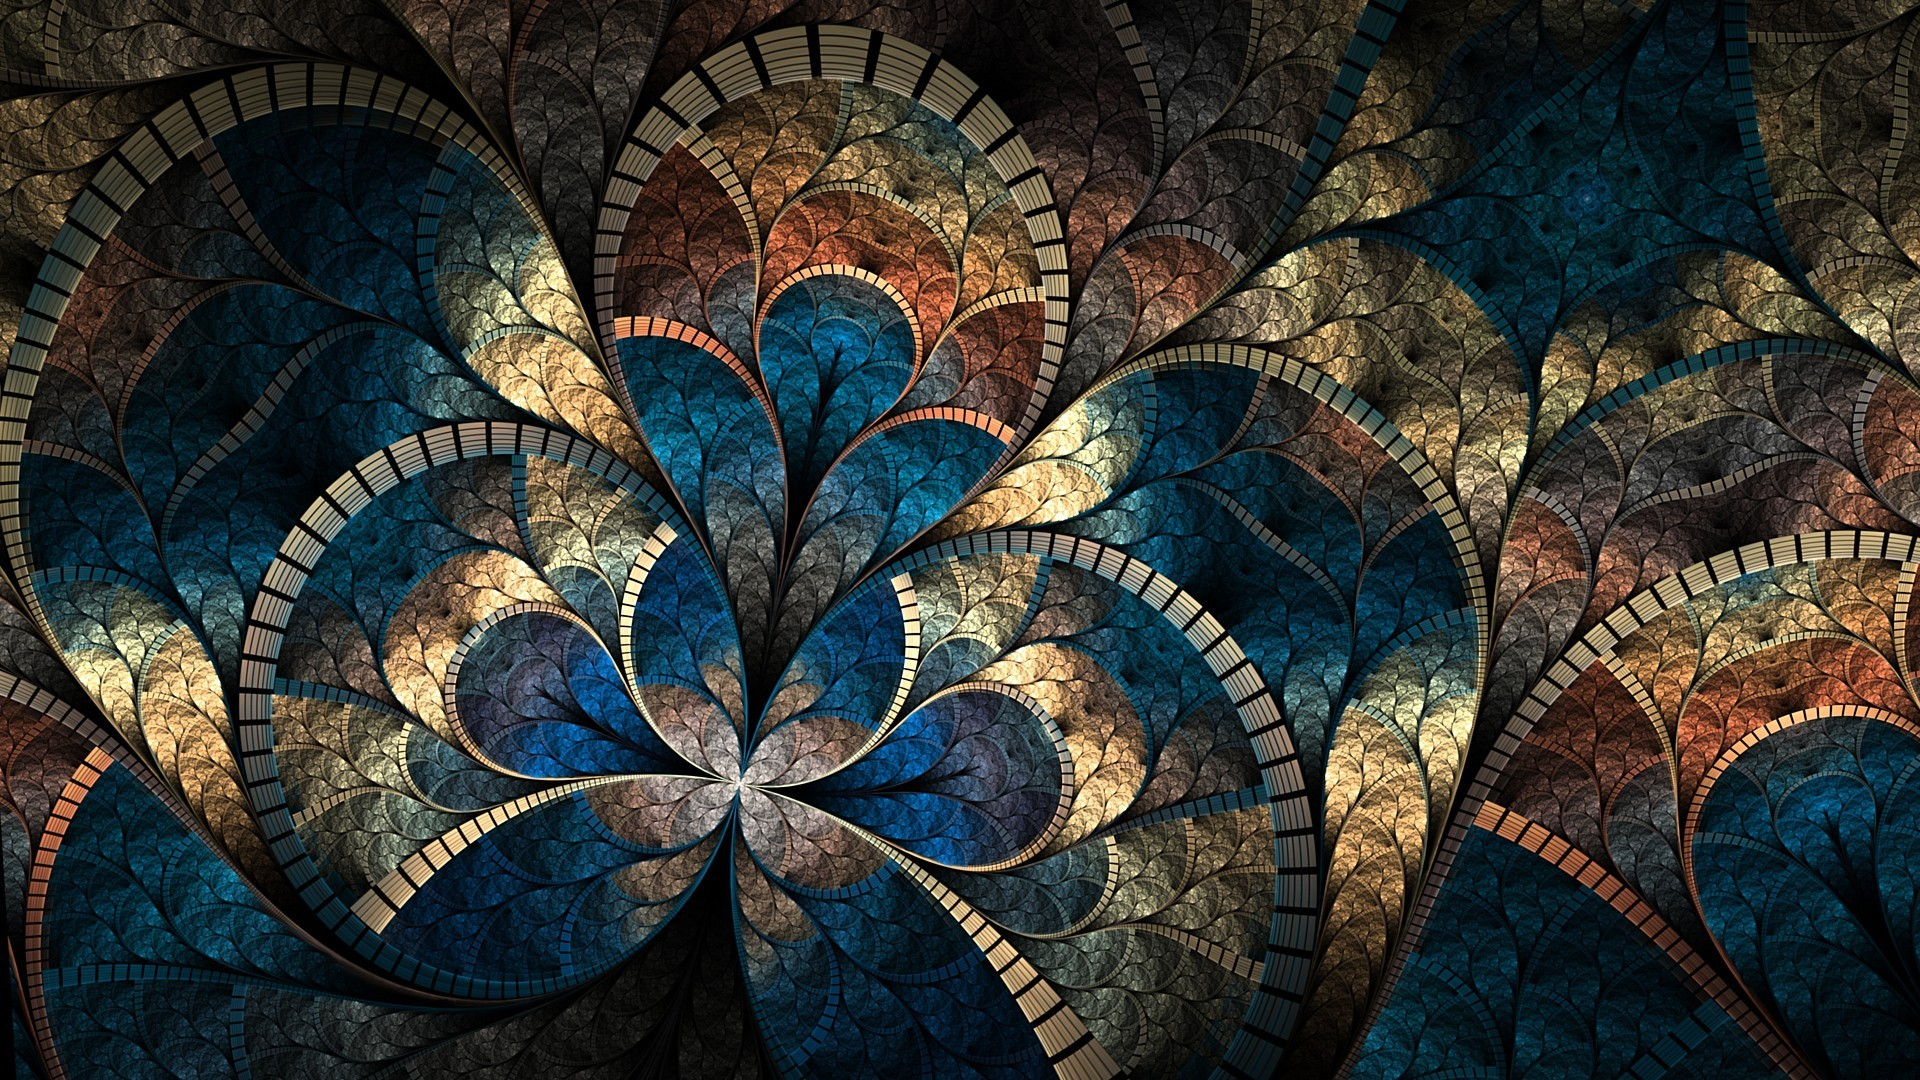 Artistic full hd wallpaper and background image 1920x1080 id235226 abstract artistic wallpaper voltagebd Gallery